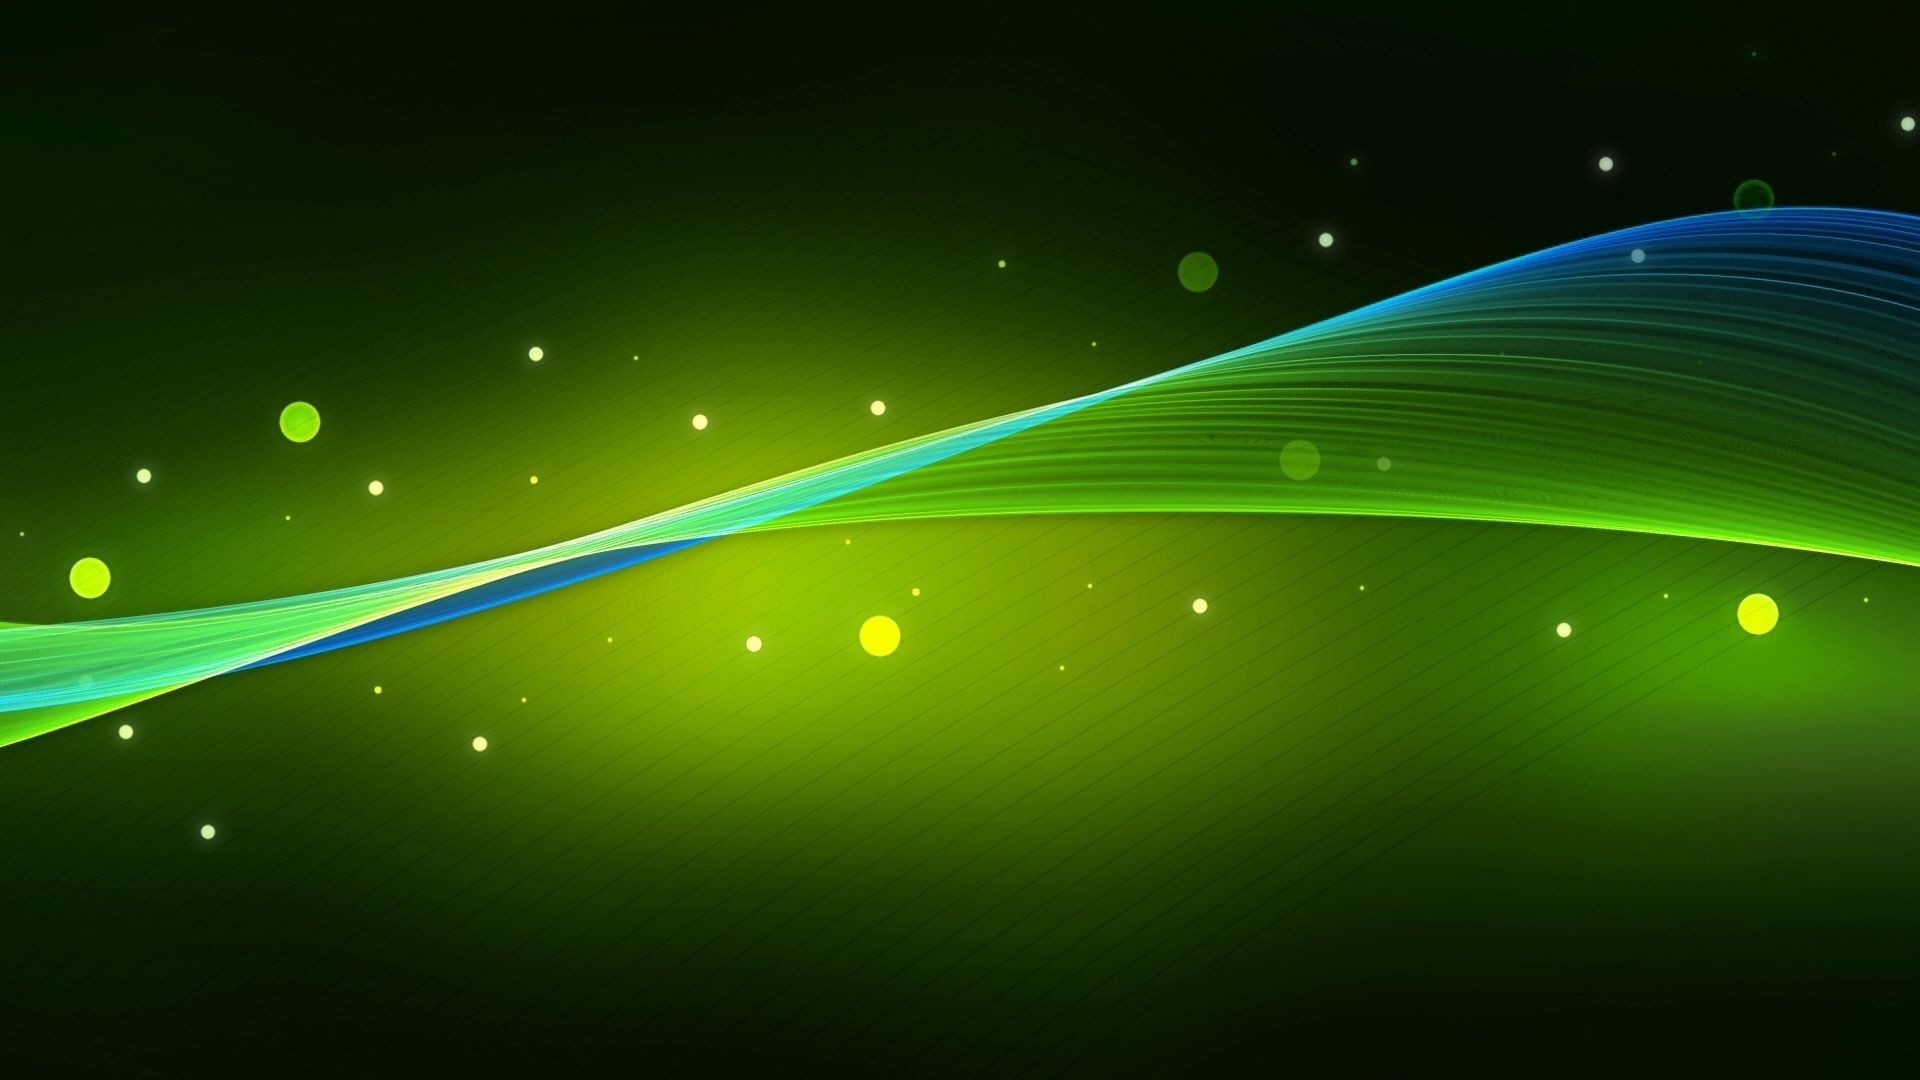 1920x1080 green wallpaper: Background HD 1920x1080 Green (72+ Images